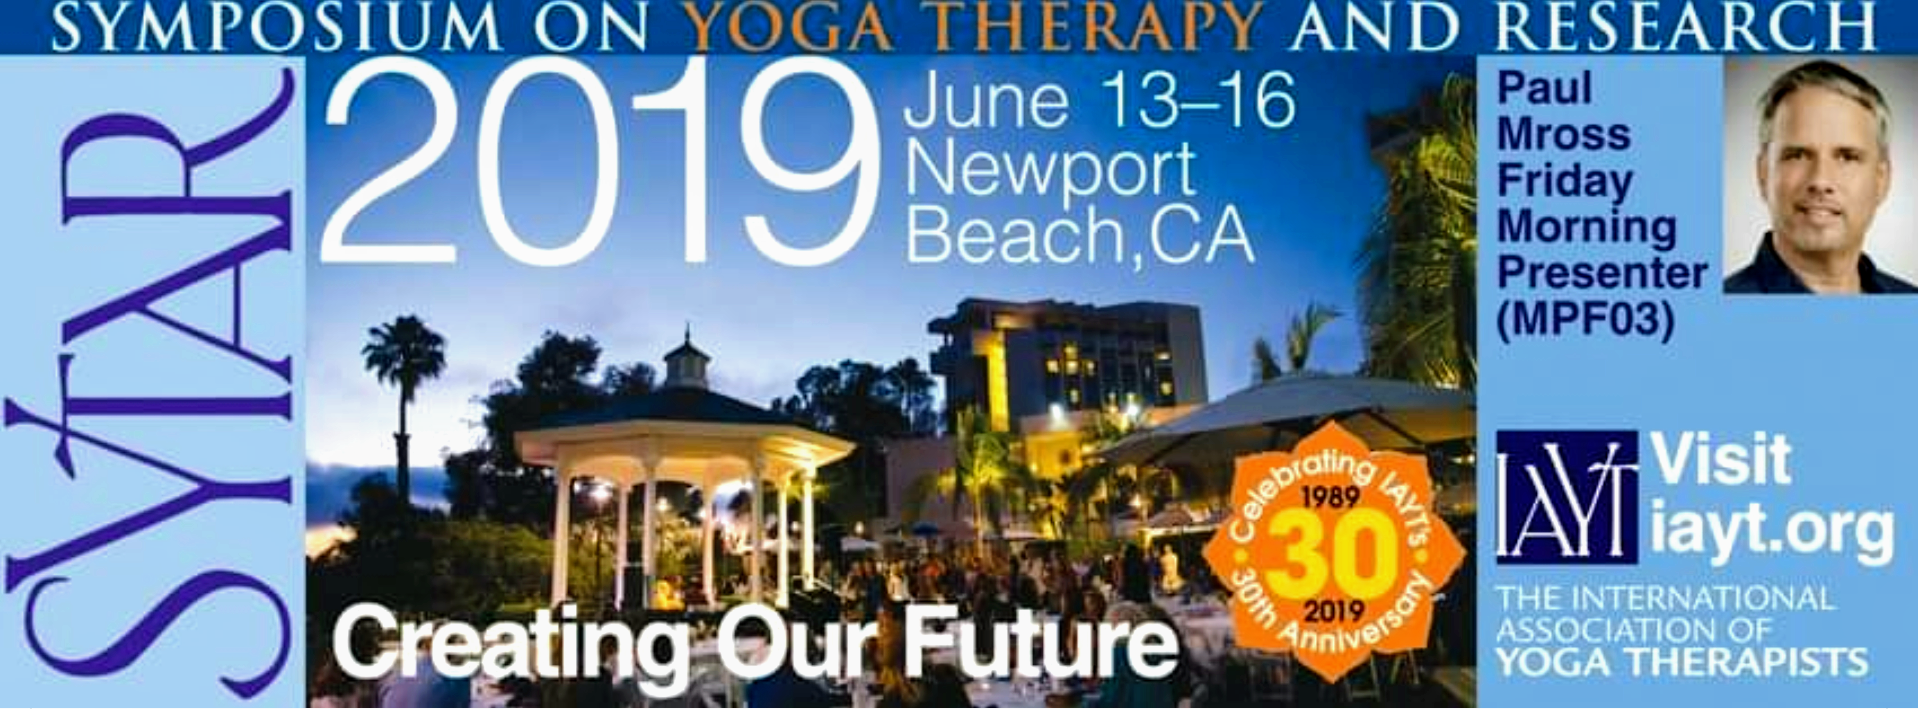 SYTAR 2019 - June 13-16, 2019 at Newport BeachI am very excited to be both a presenter and sponsor for this year's SYTAR event. We will have the latest Happ:y products available to view and purchase. Please come by my booth and visit me.